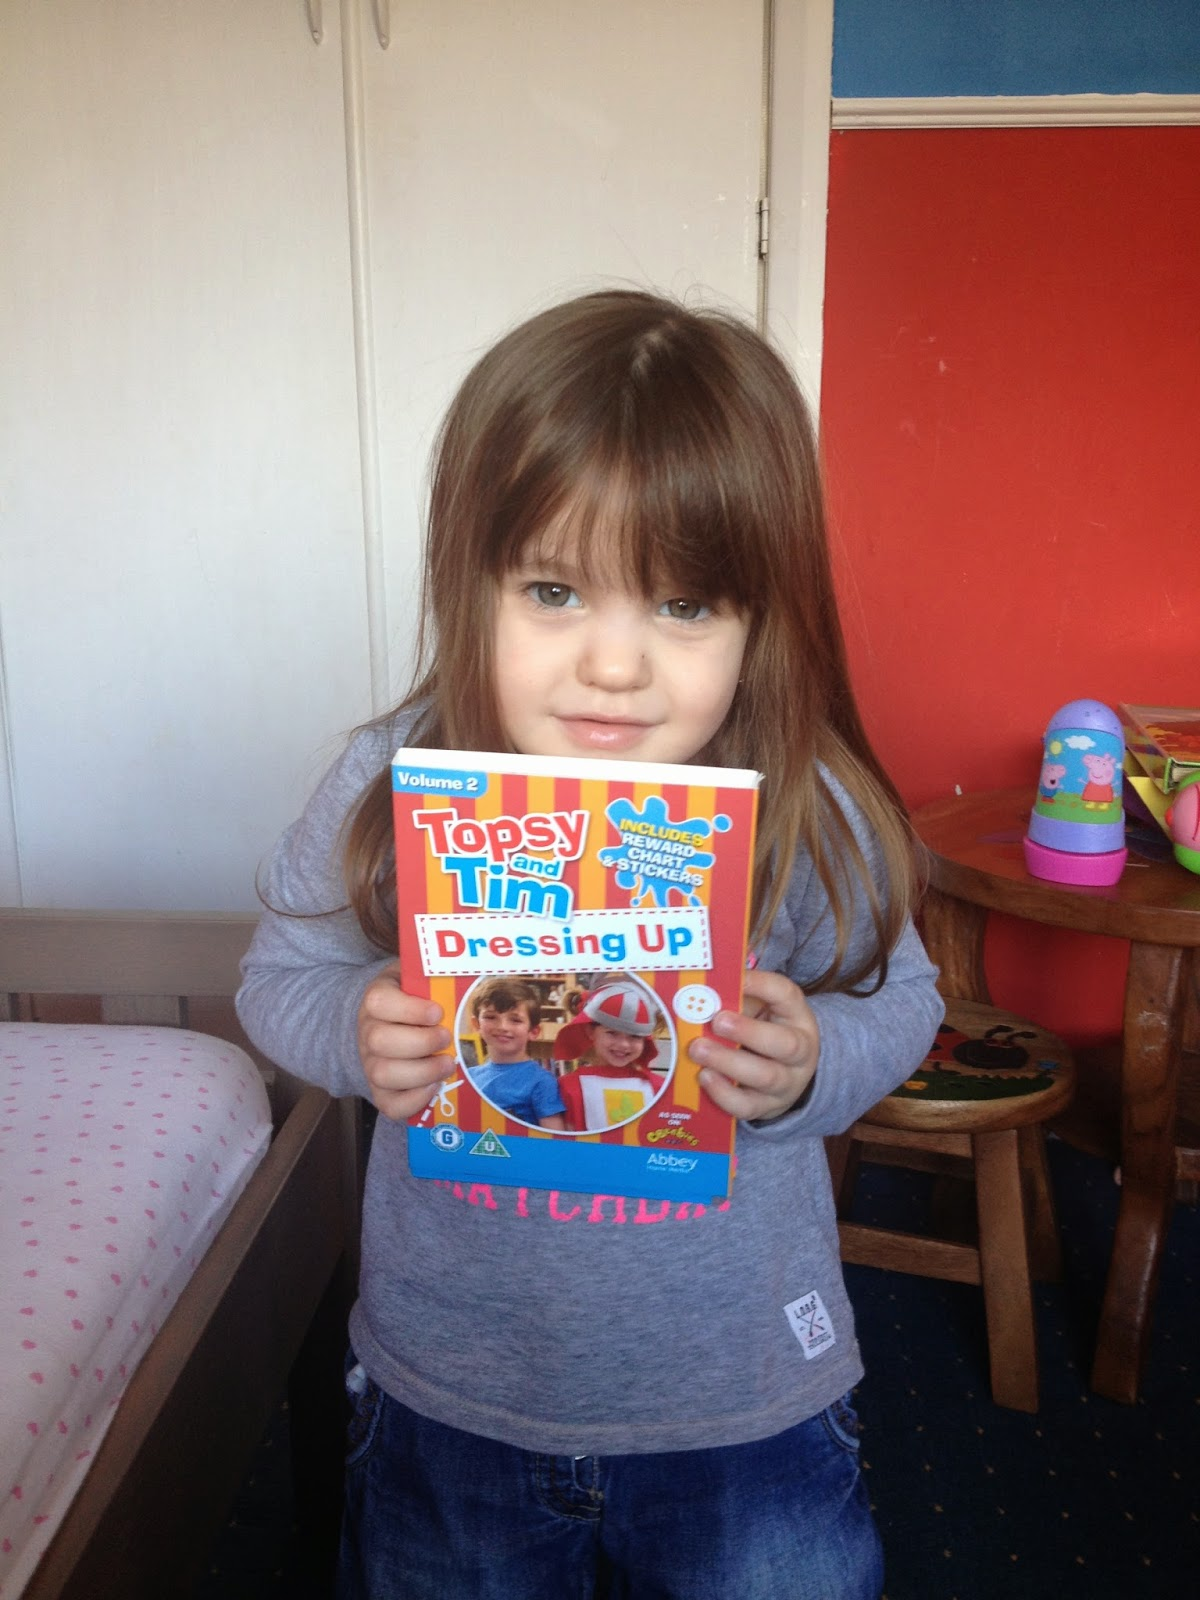 Review: Topsy and Tim Dressing Up DVD – Abbey Kids Home Media